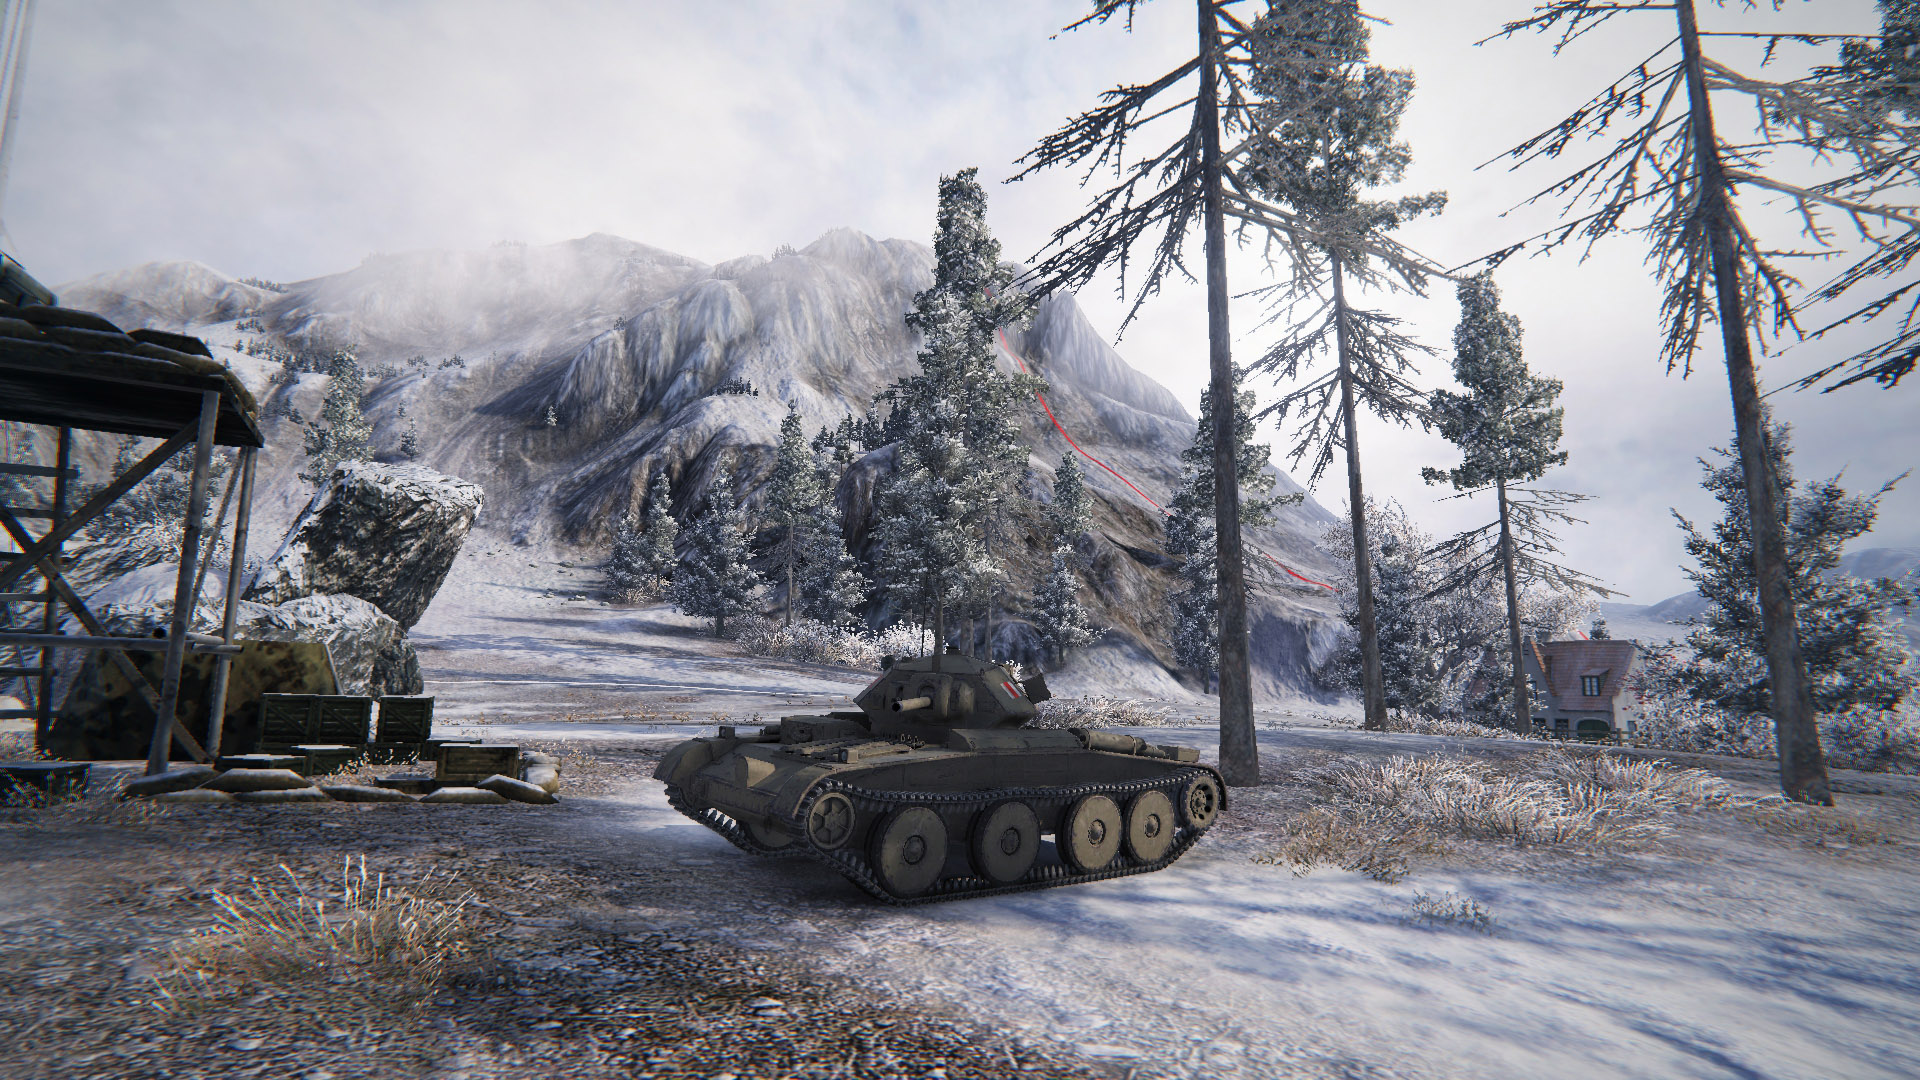 The Covenanter is a Tier 4 British tank that excels at flanking with its vast array of weaponry.